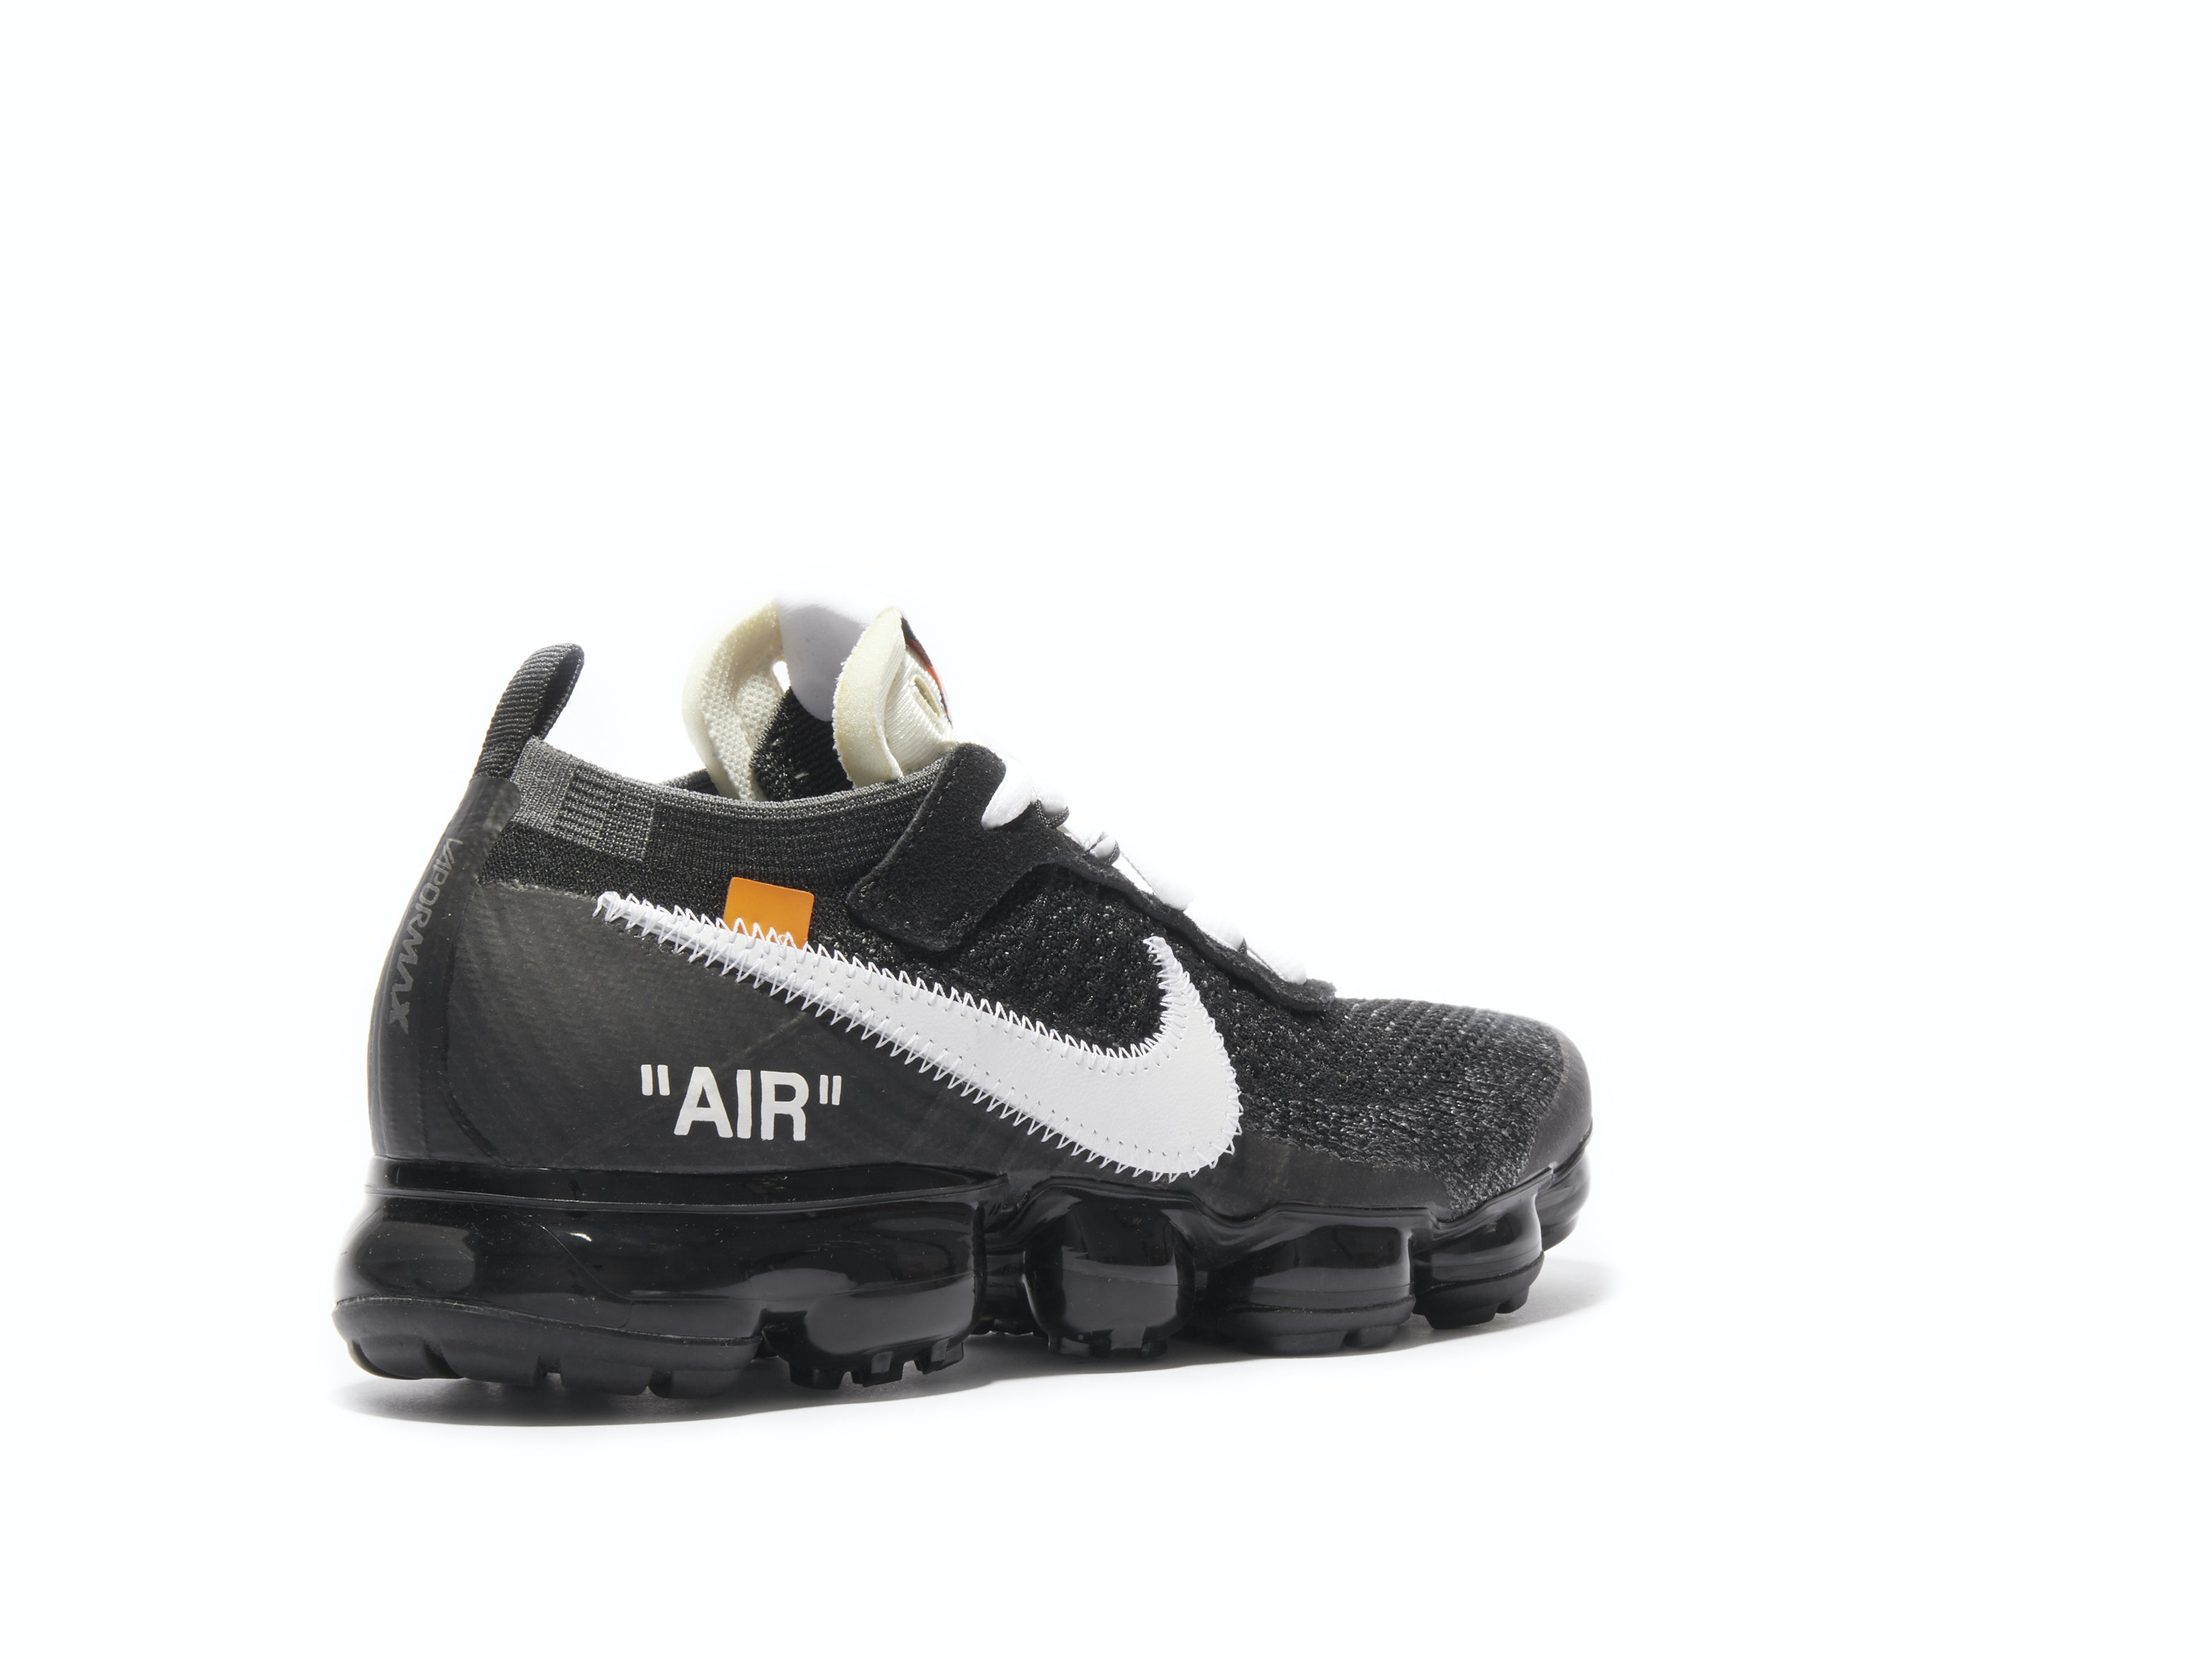 2fab26ffb85 Air Vapormax OG x Off-White. 100% AuthenticSold out! Nike   AA3831-001